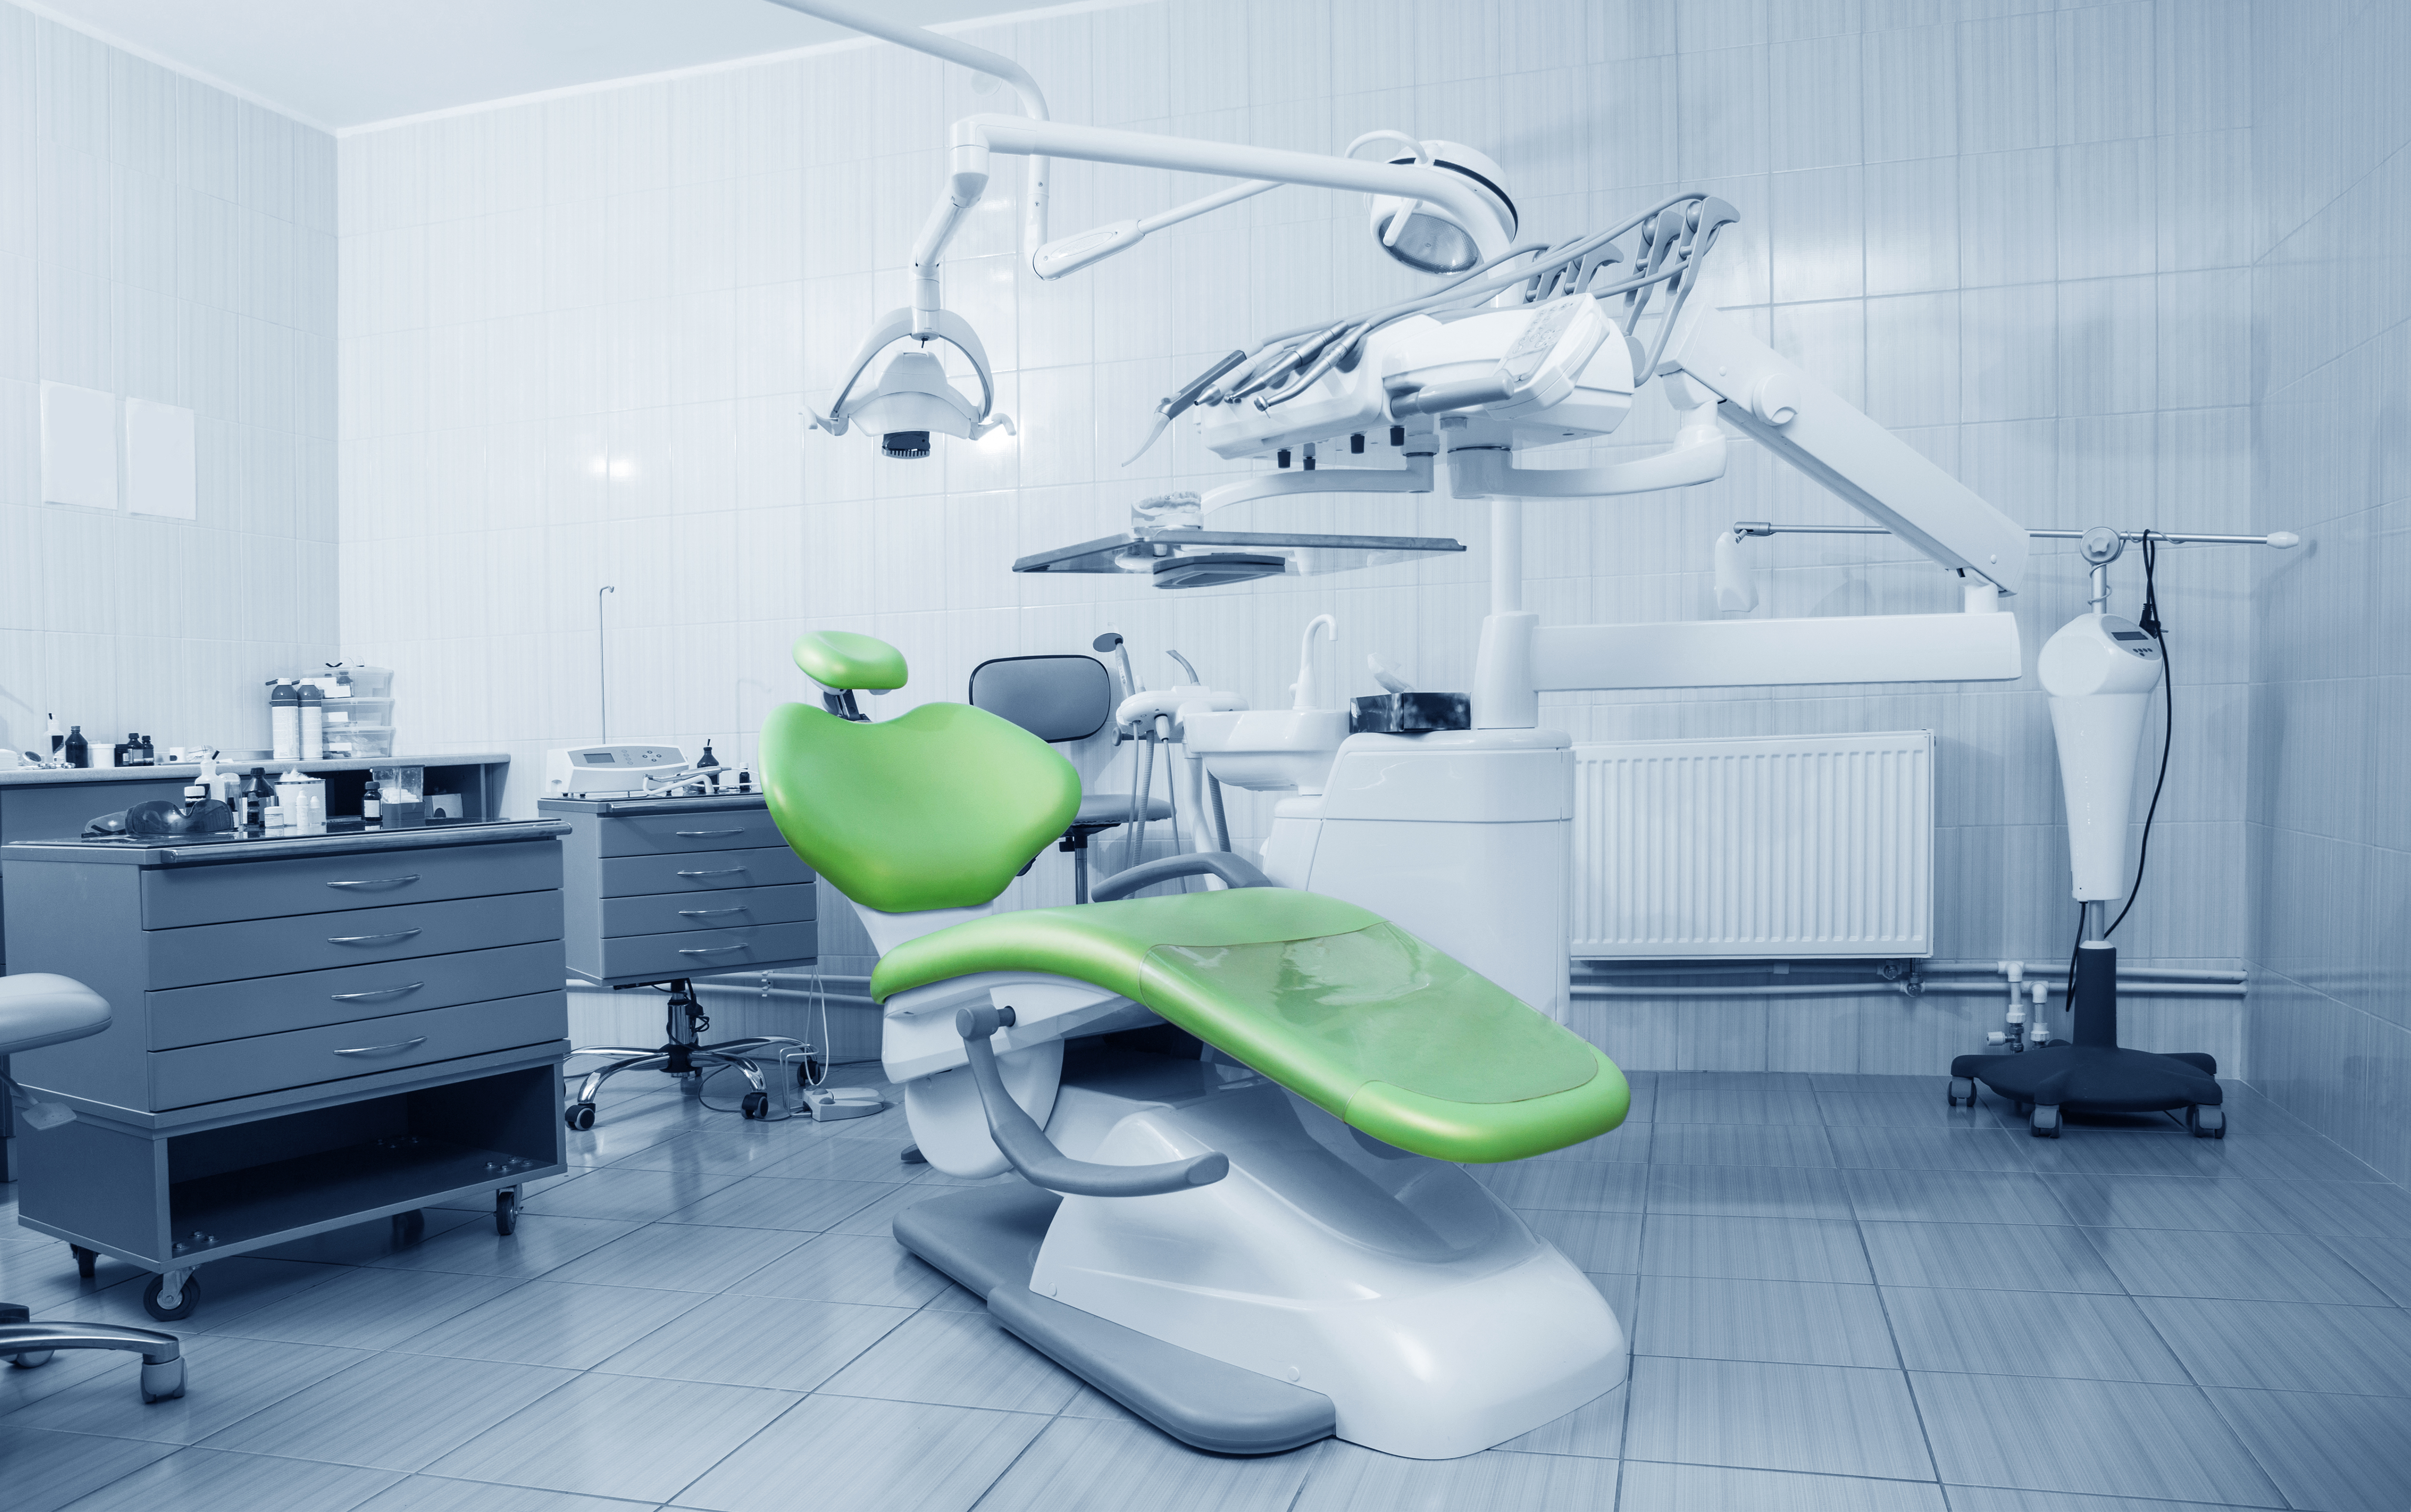 Church Road Dental – It's Like A Mini Dental Hospital Manchester